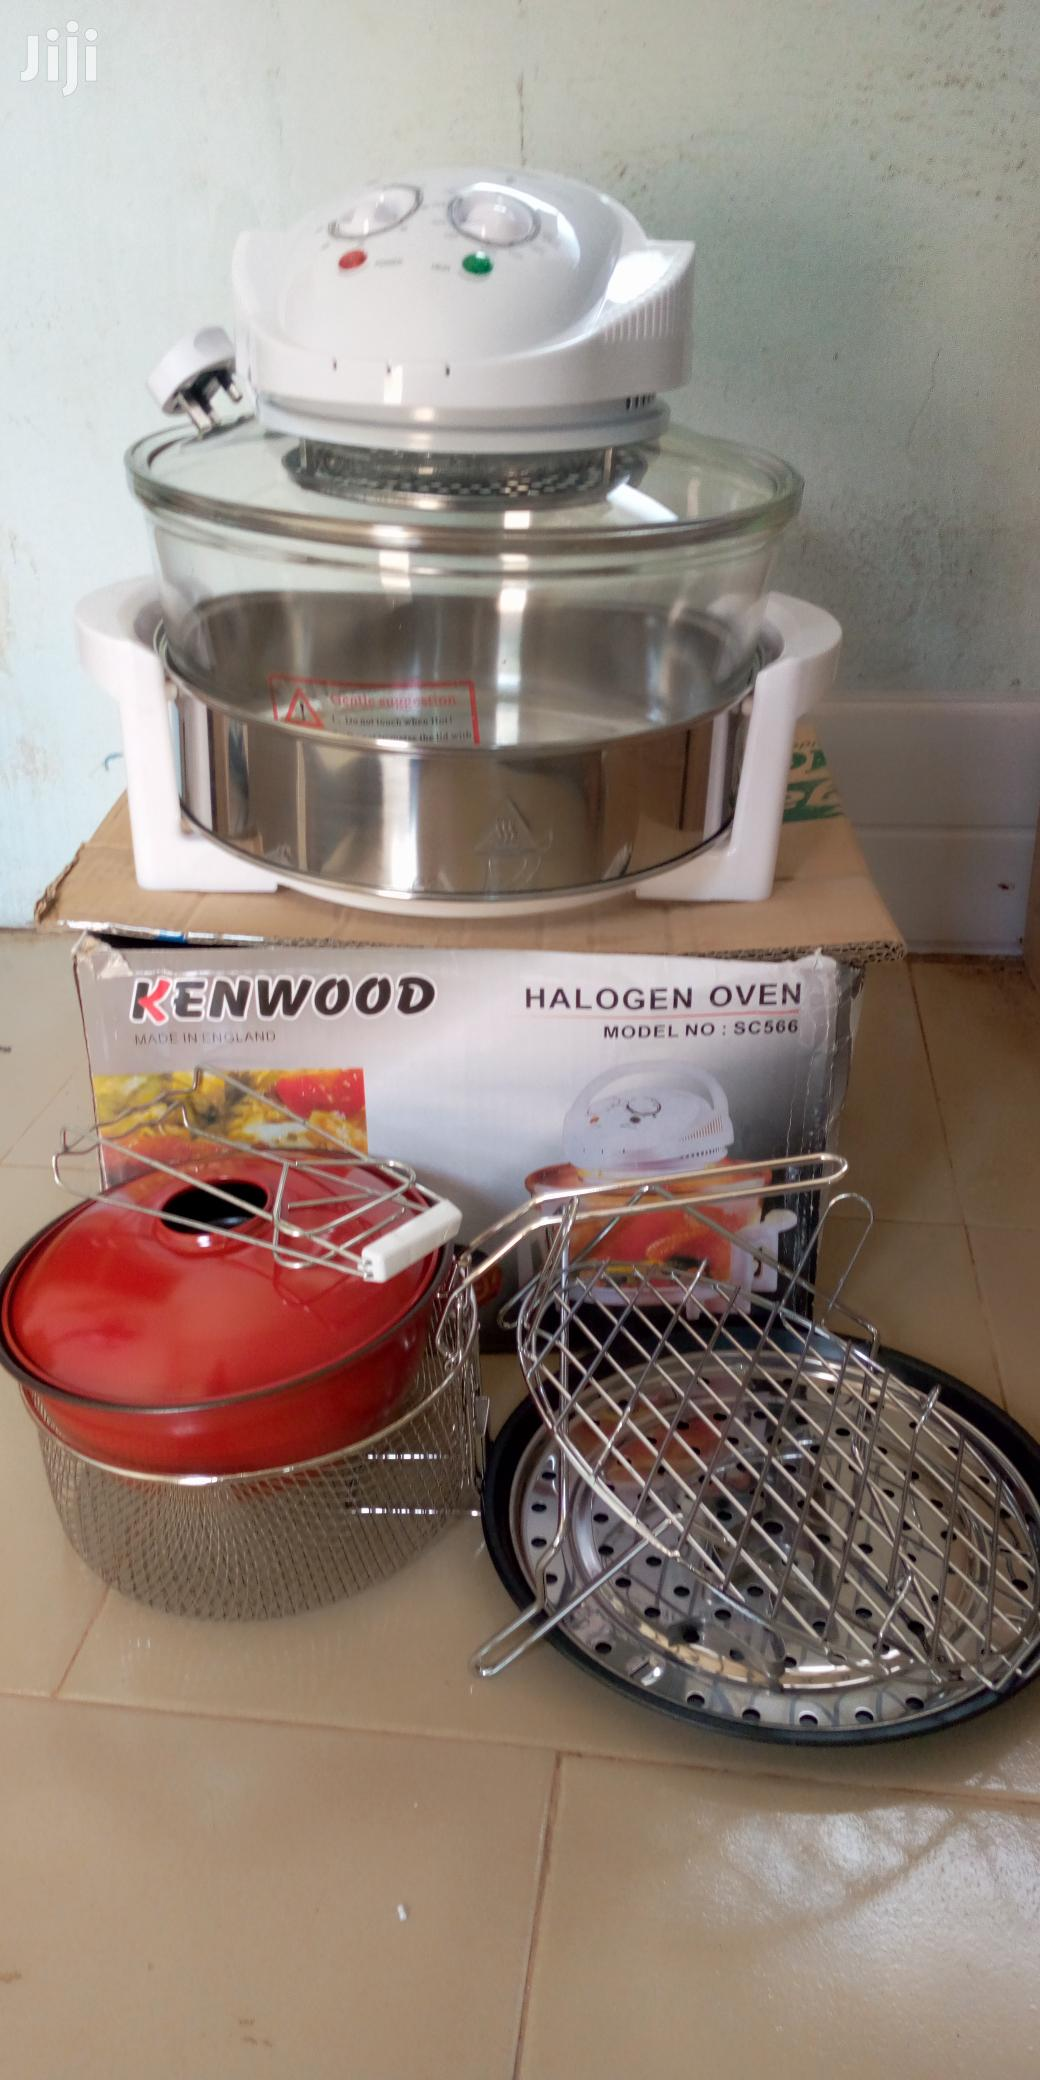 Halogen Oven | Kitchen Appliances for sale in Cantonments, Greater Accra, Ghana